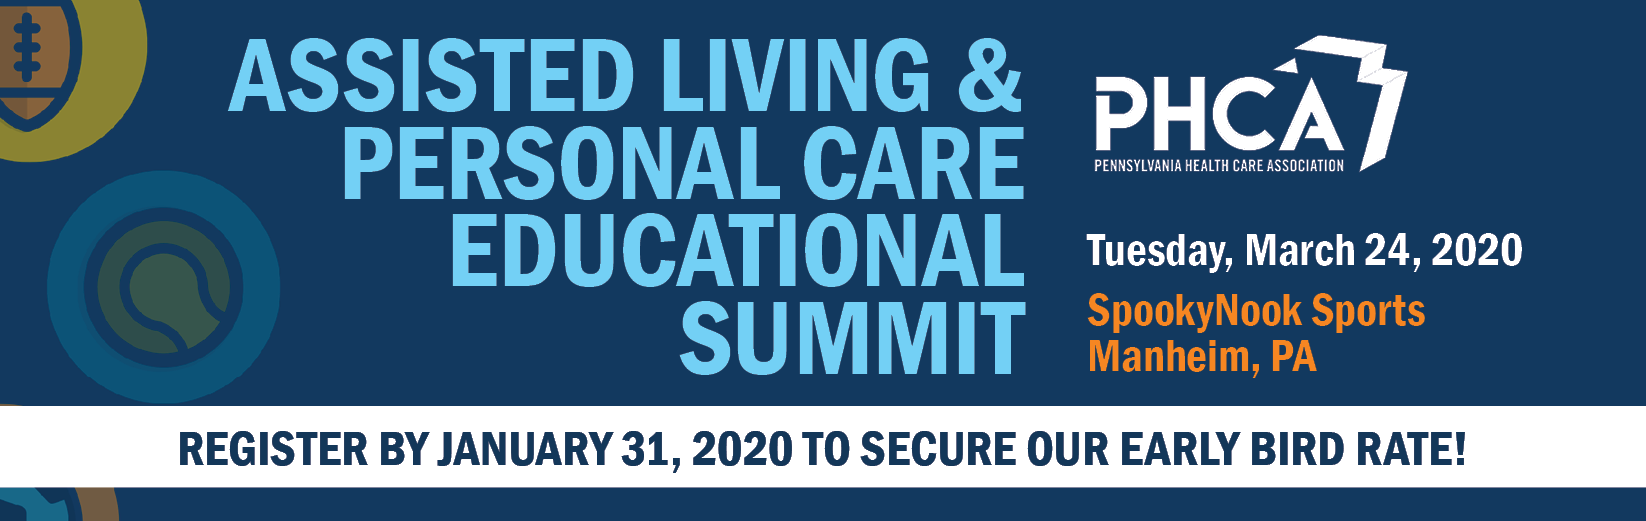 2020 PHCA Assisted Living and Personal Care Summit